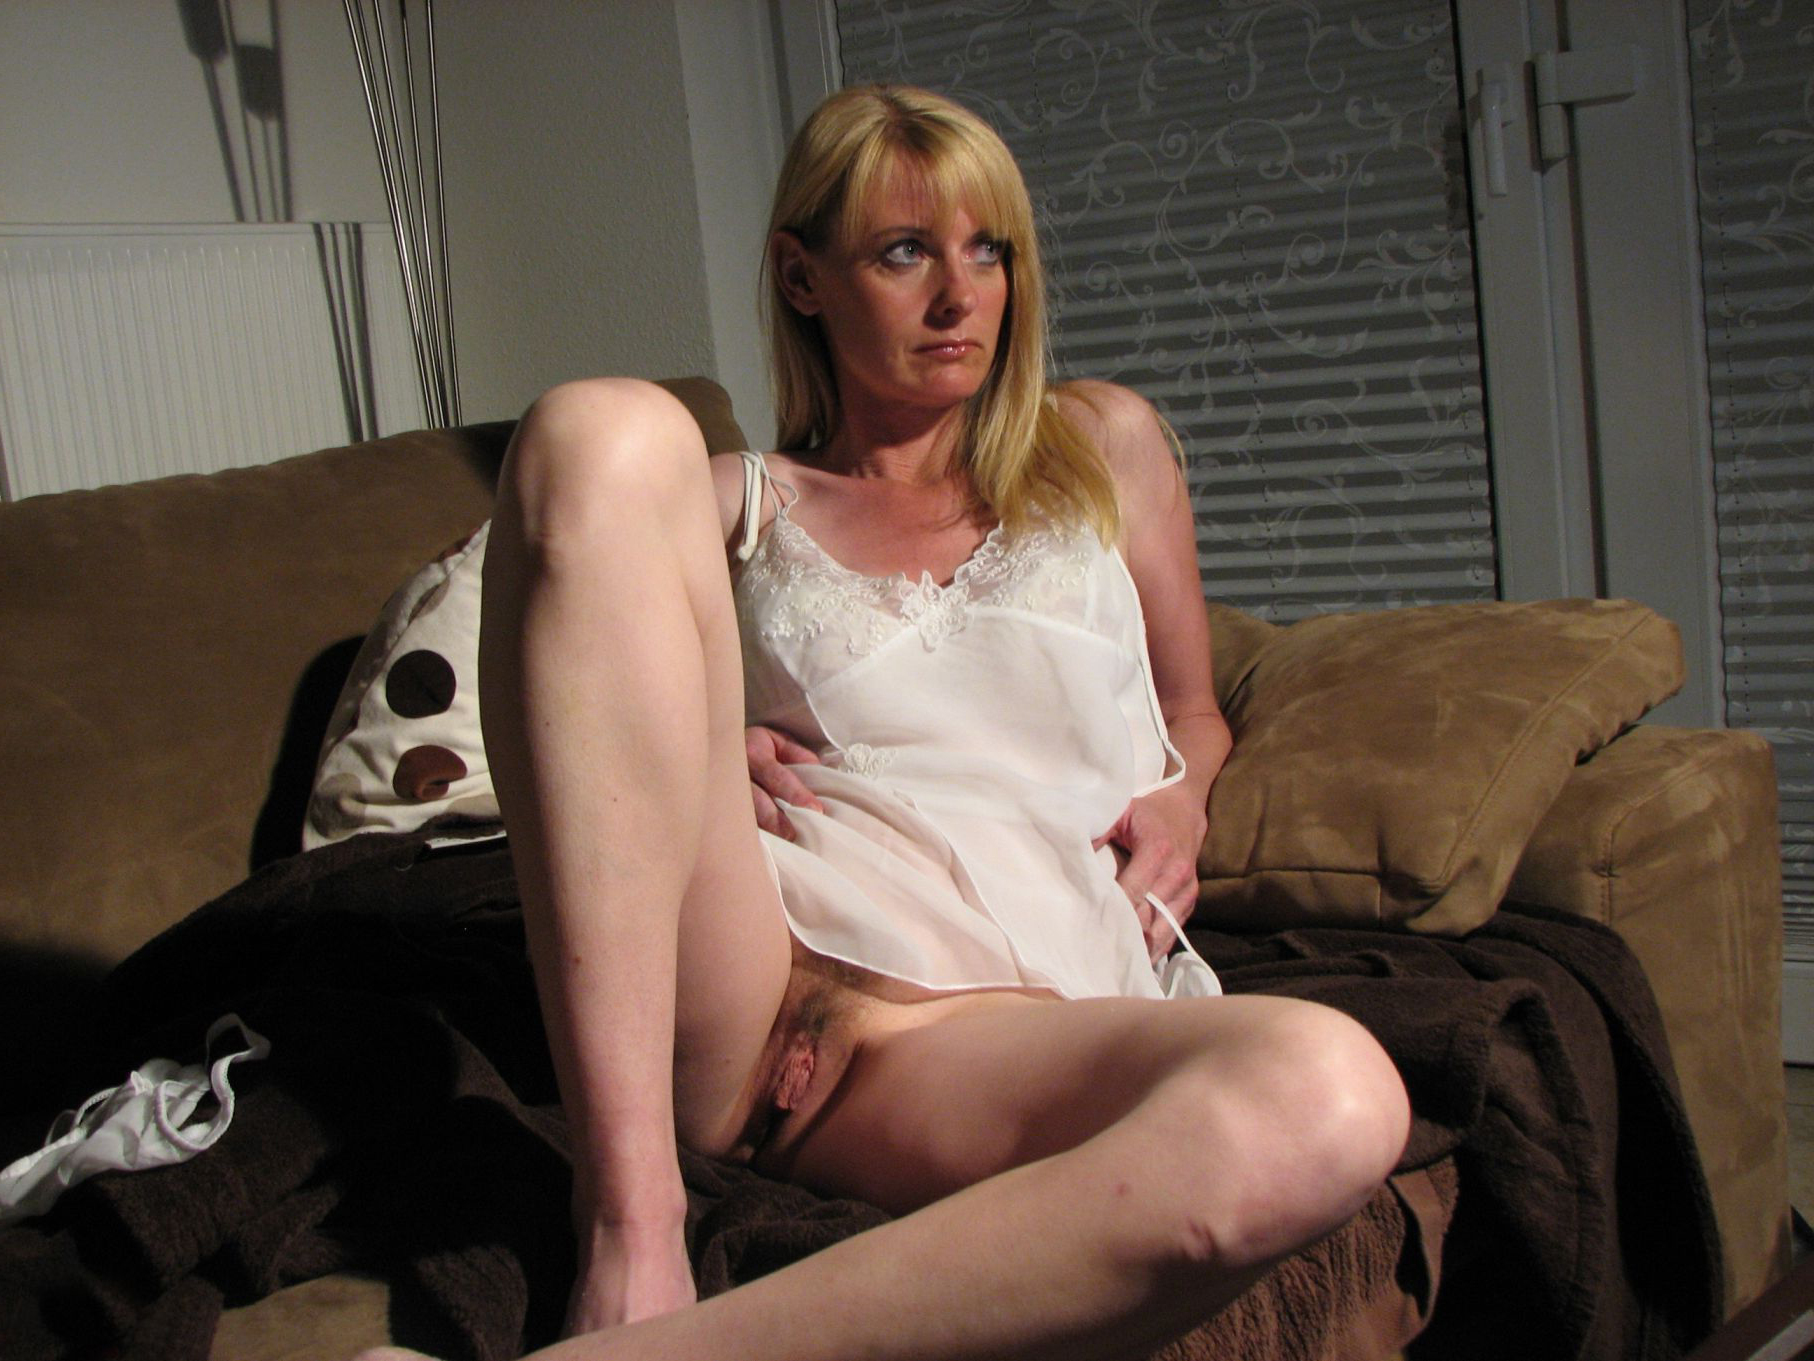 moms hairy pussies coupled with still sexy